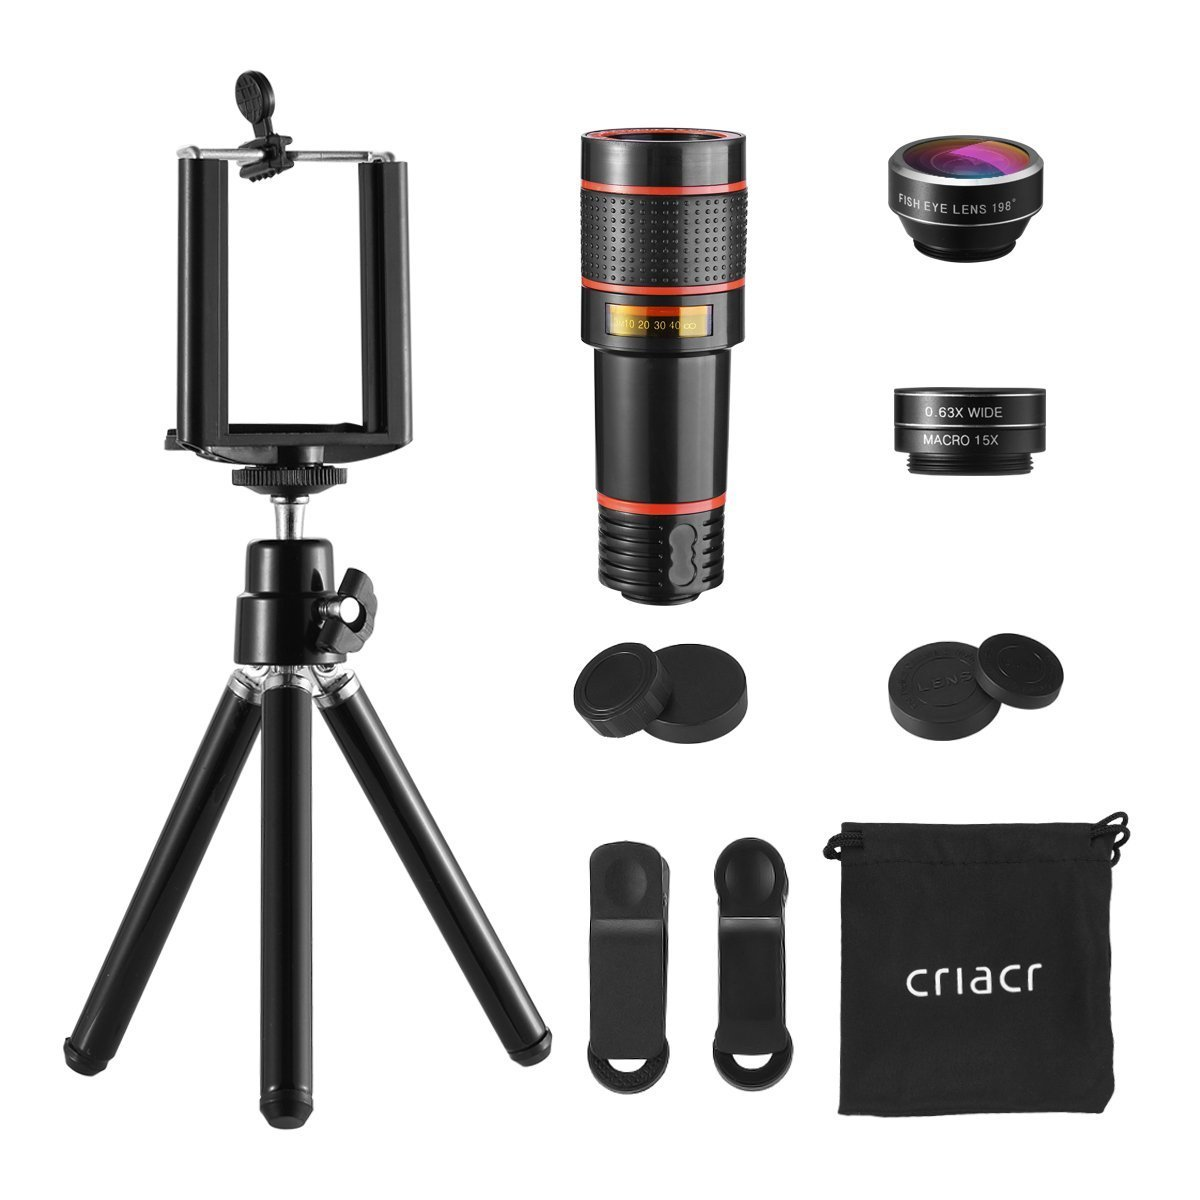 criacr phone lens pack and tripod for mobile device